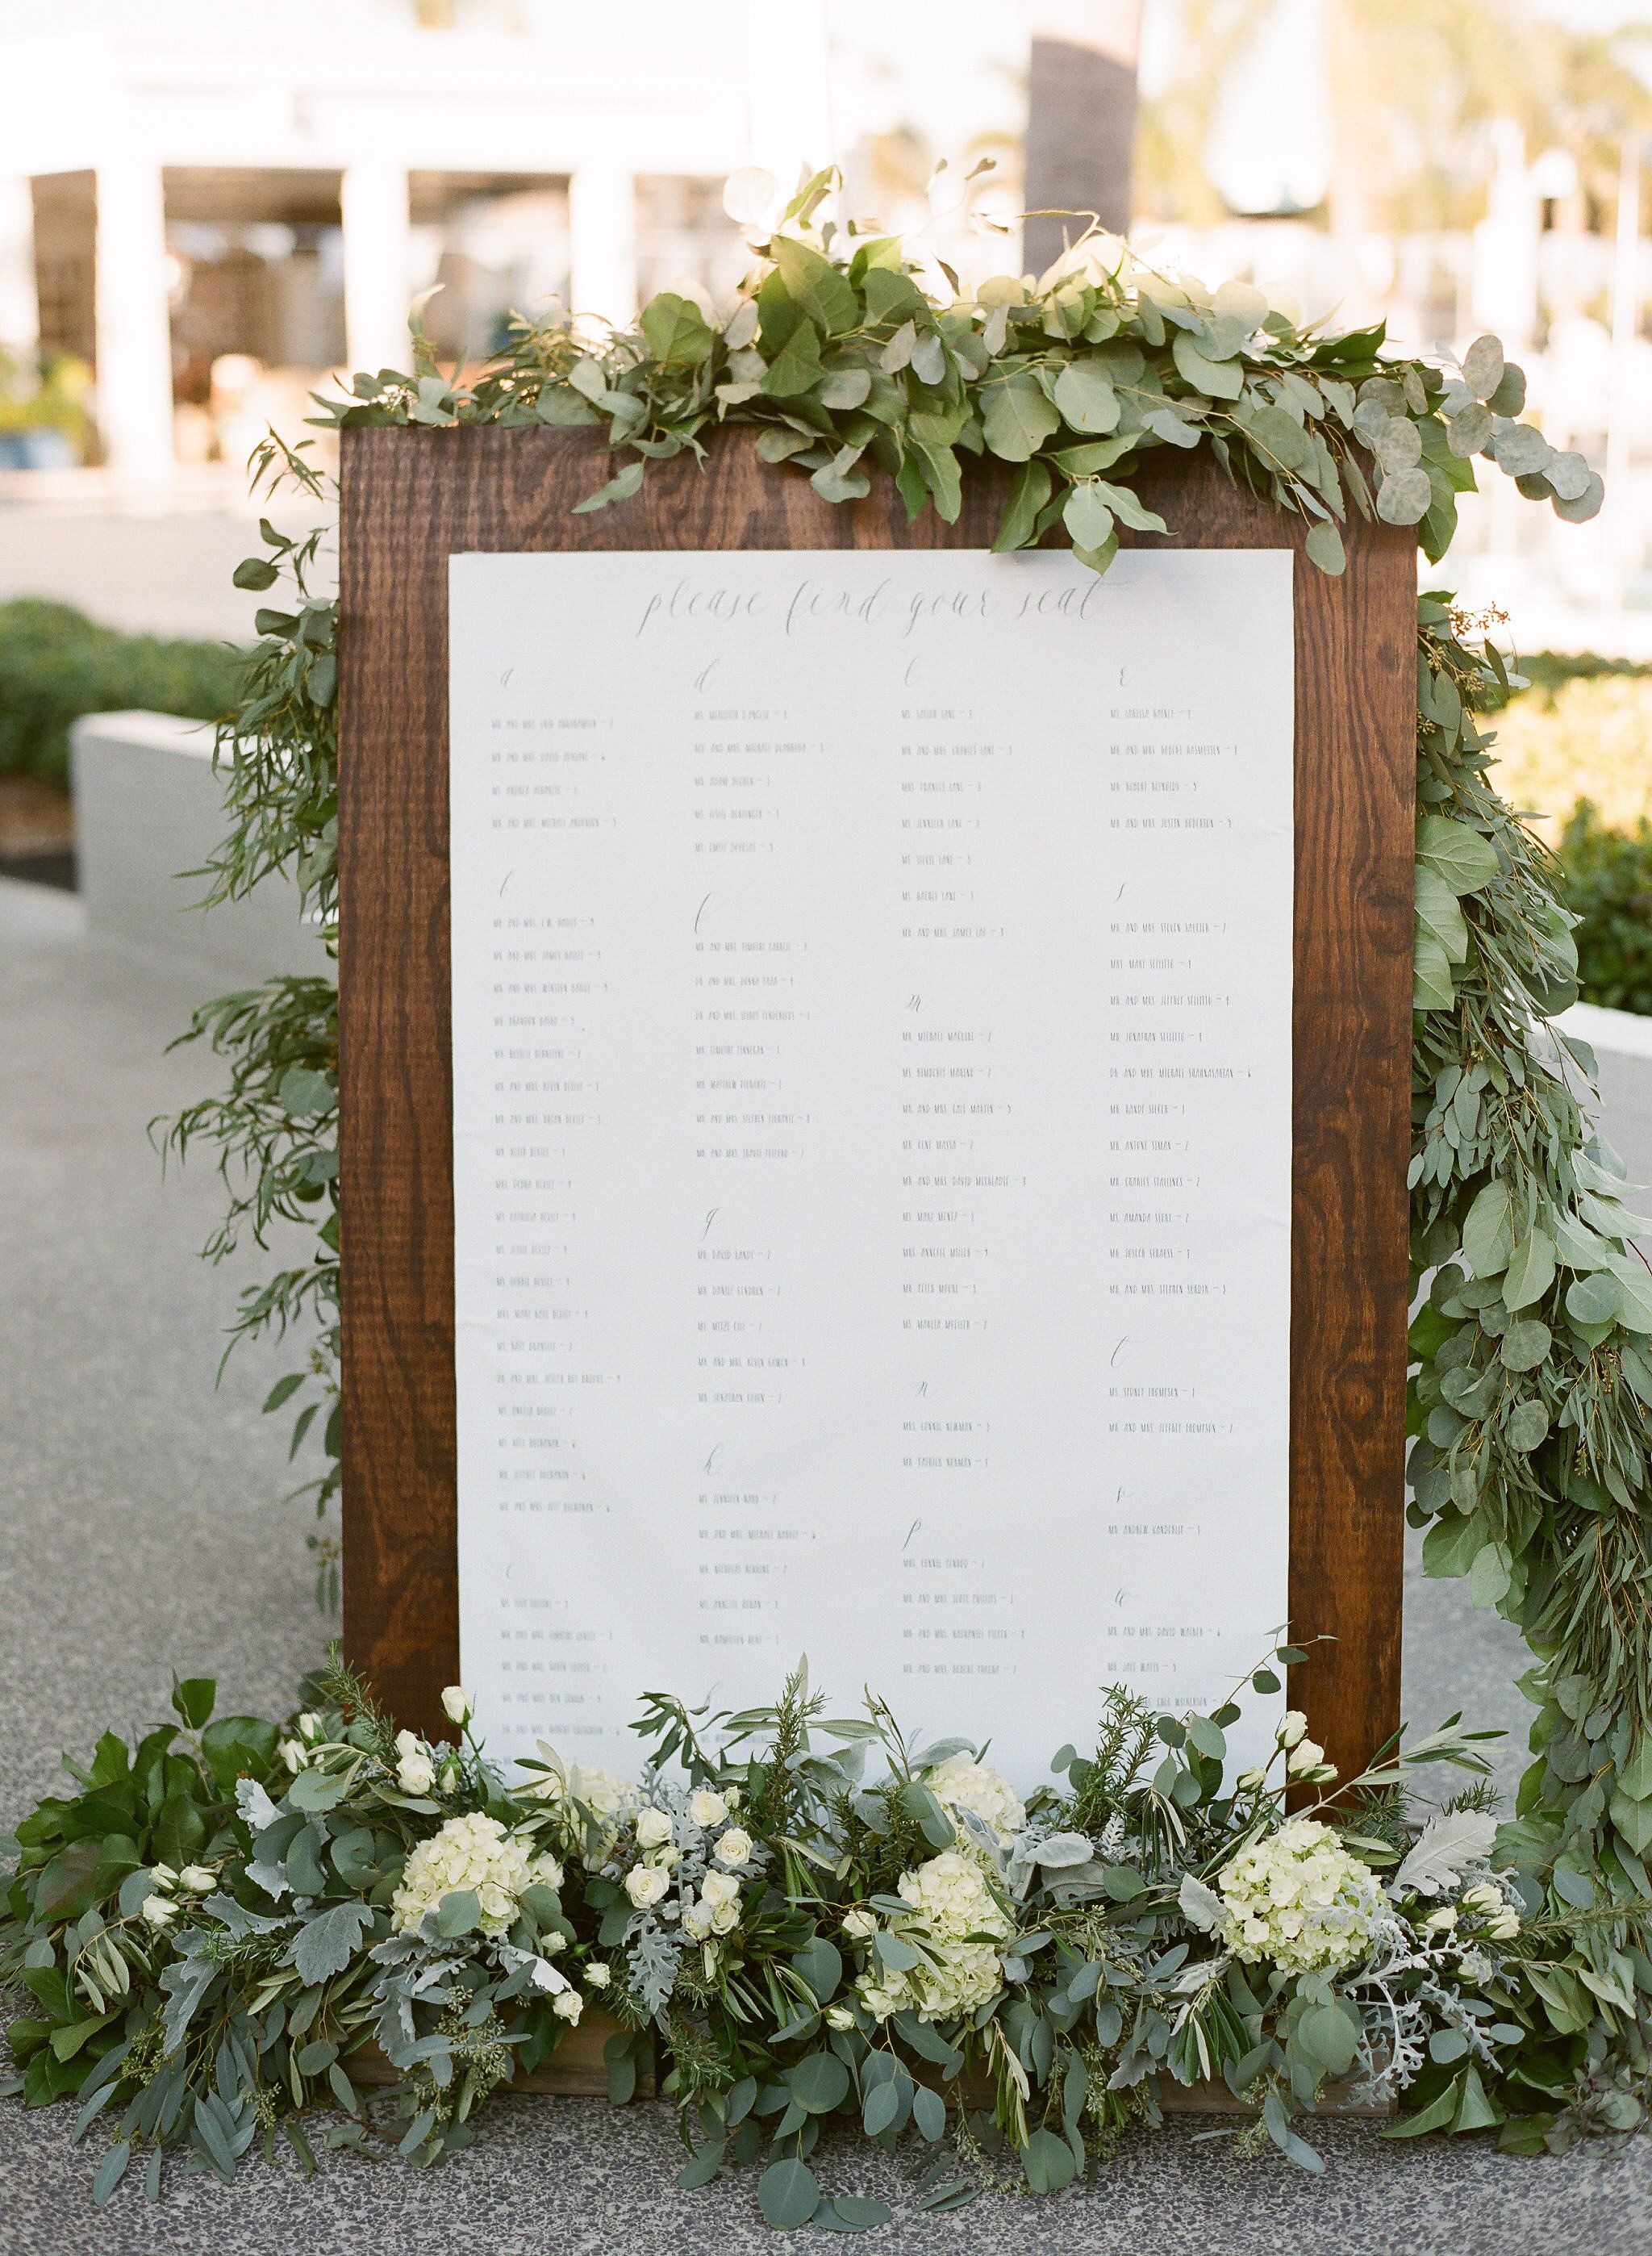 Seating chart created by tampa bride jessica bexley she this staining  board also rh pinterest